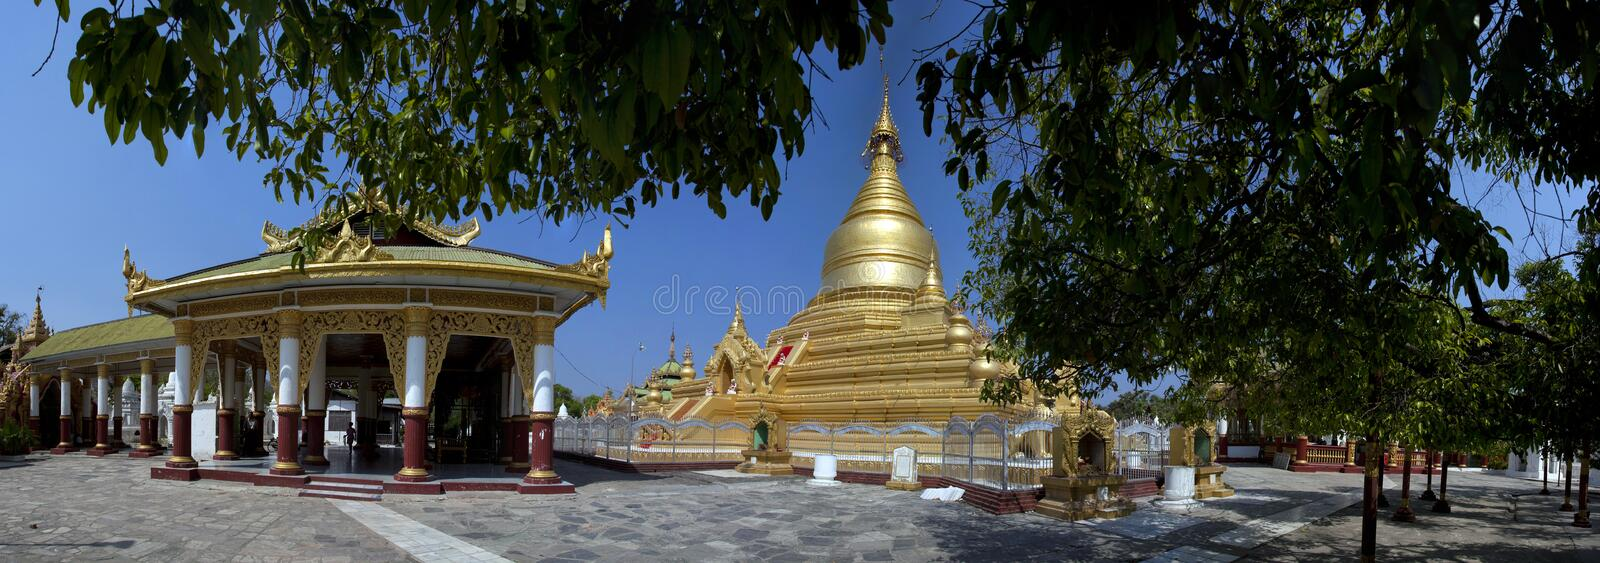 Mandalay image stock